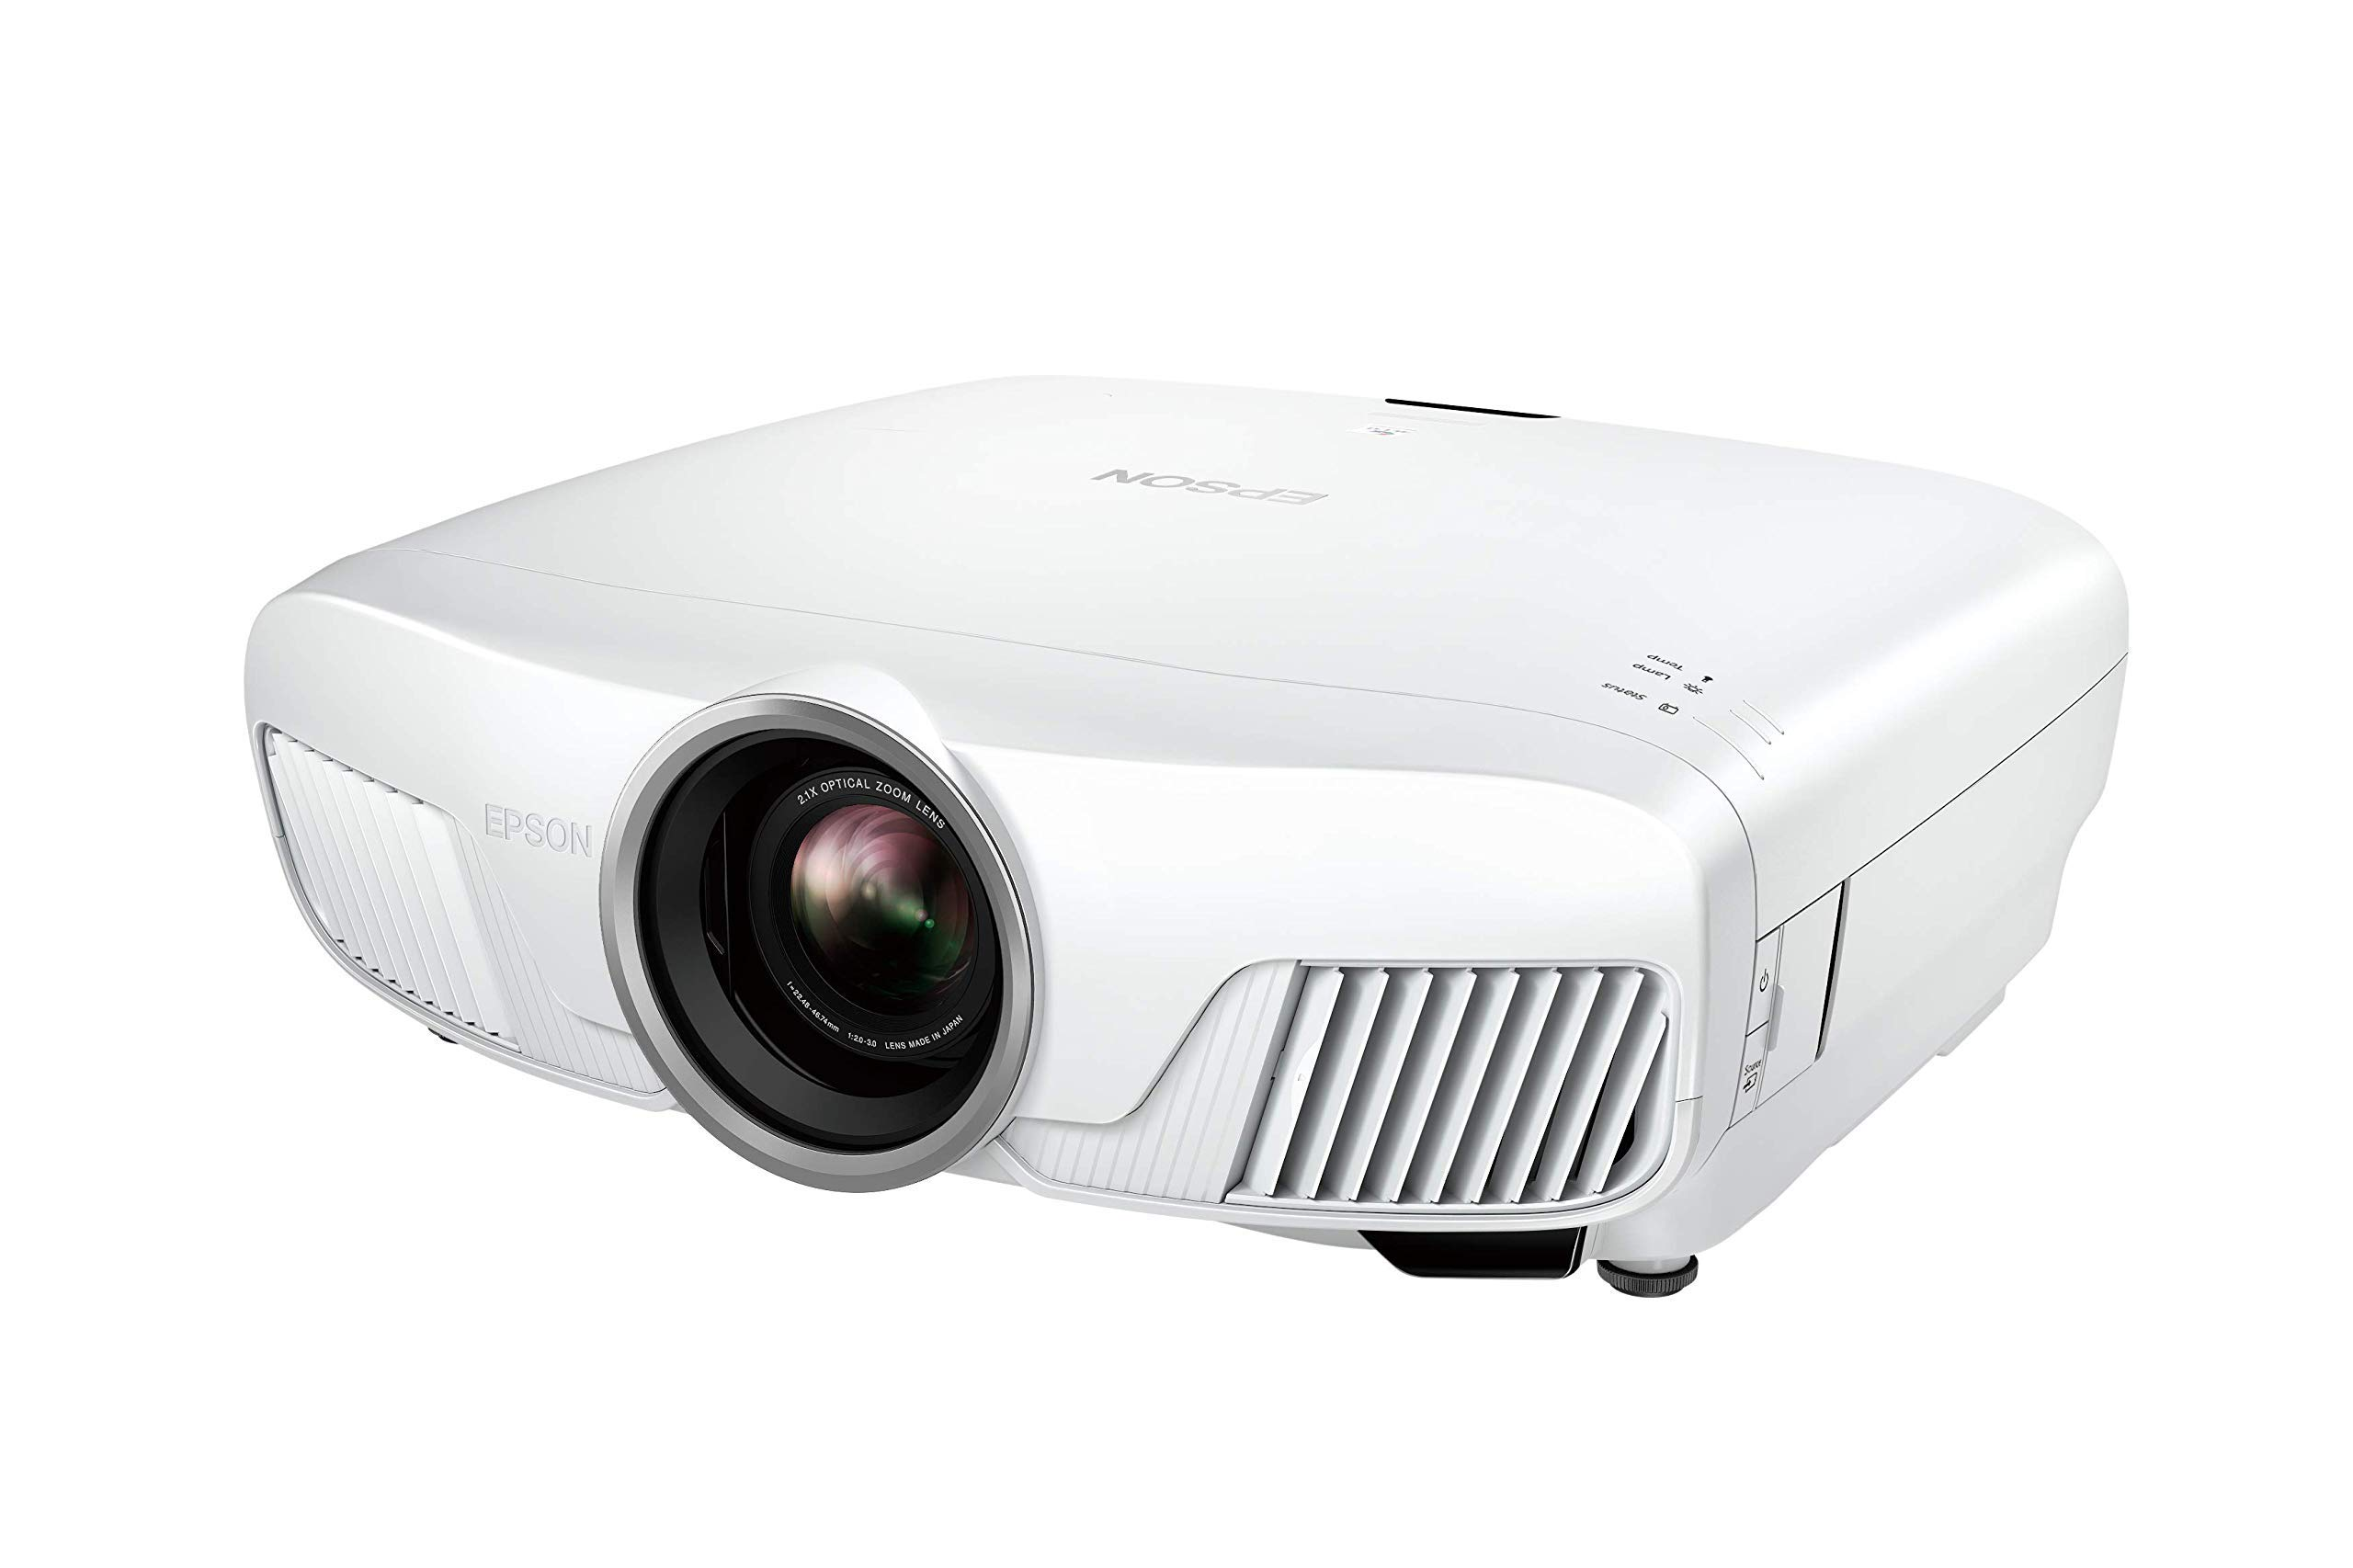 71wUC1lR3NL - Epson EH-TW7400 3LCD, 4K Pro UHD Super Resolution, 2400 Lumens, 300 Inch Display, Motorised Optics, Home Cinema Projector - White